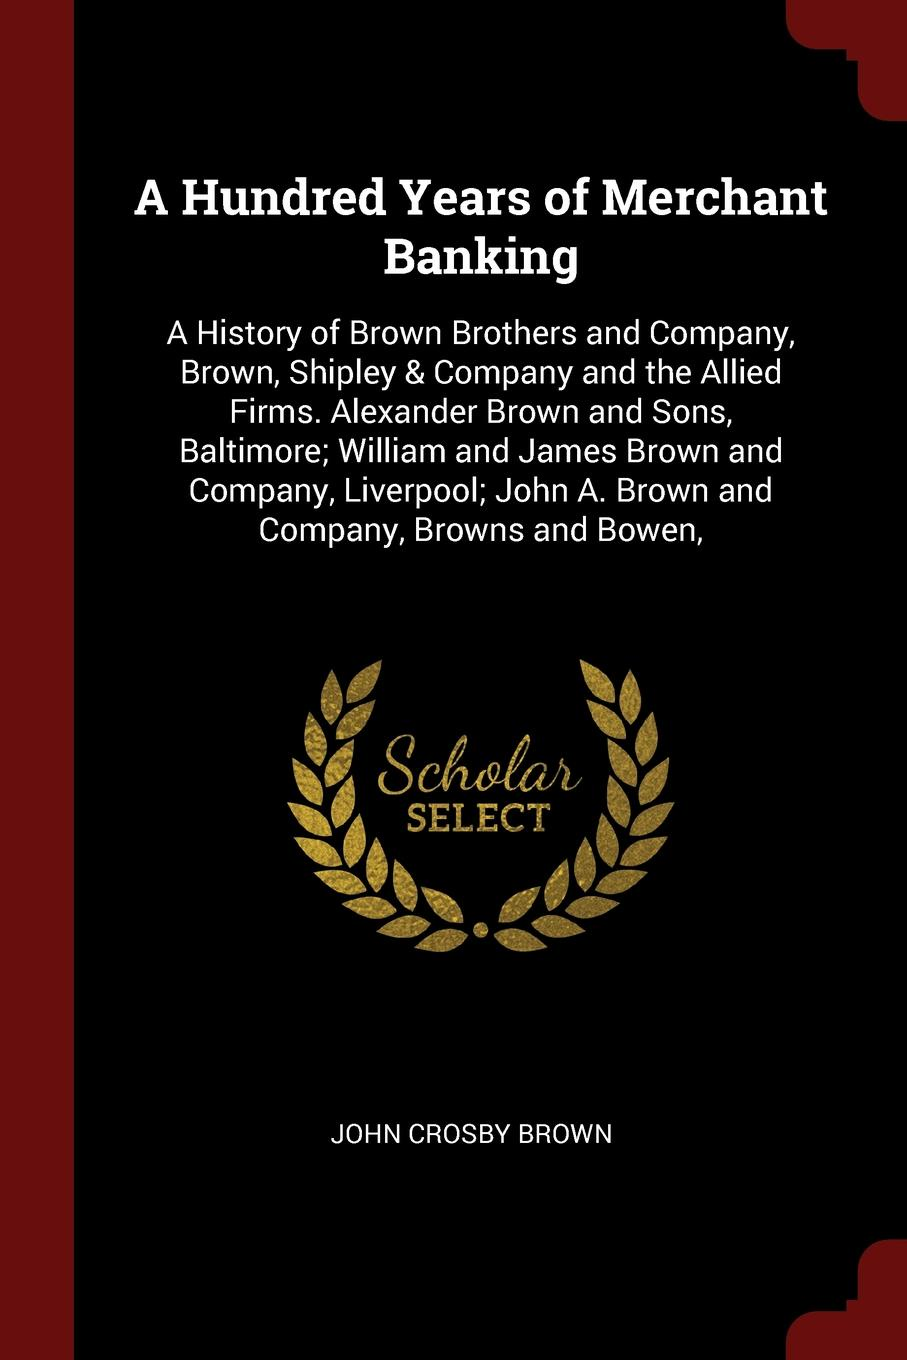 John Crosby Brown A Hundred Years of Merchant Banking. History Brothers and Company, Brown, Shipley & Company the Allied Firms. Alexander Sons, Baltimore; William James Liverpool; A. Browns and...